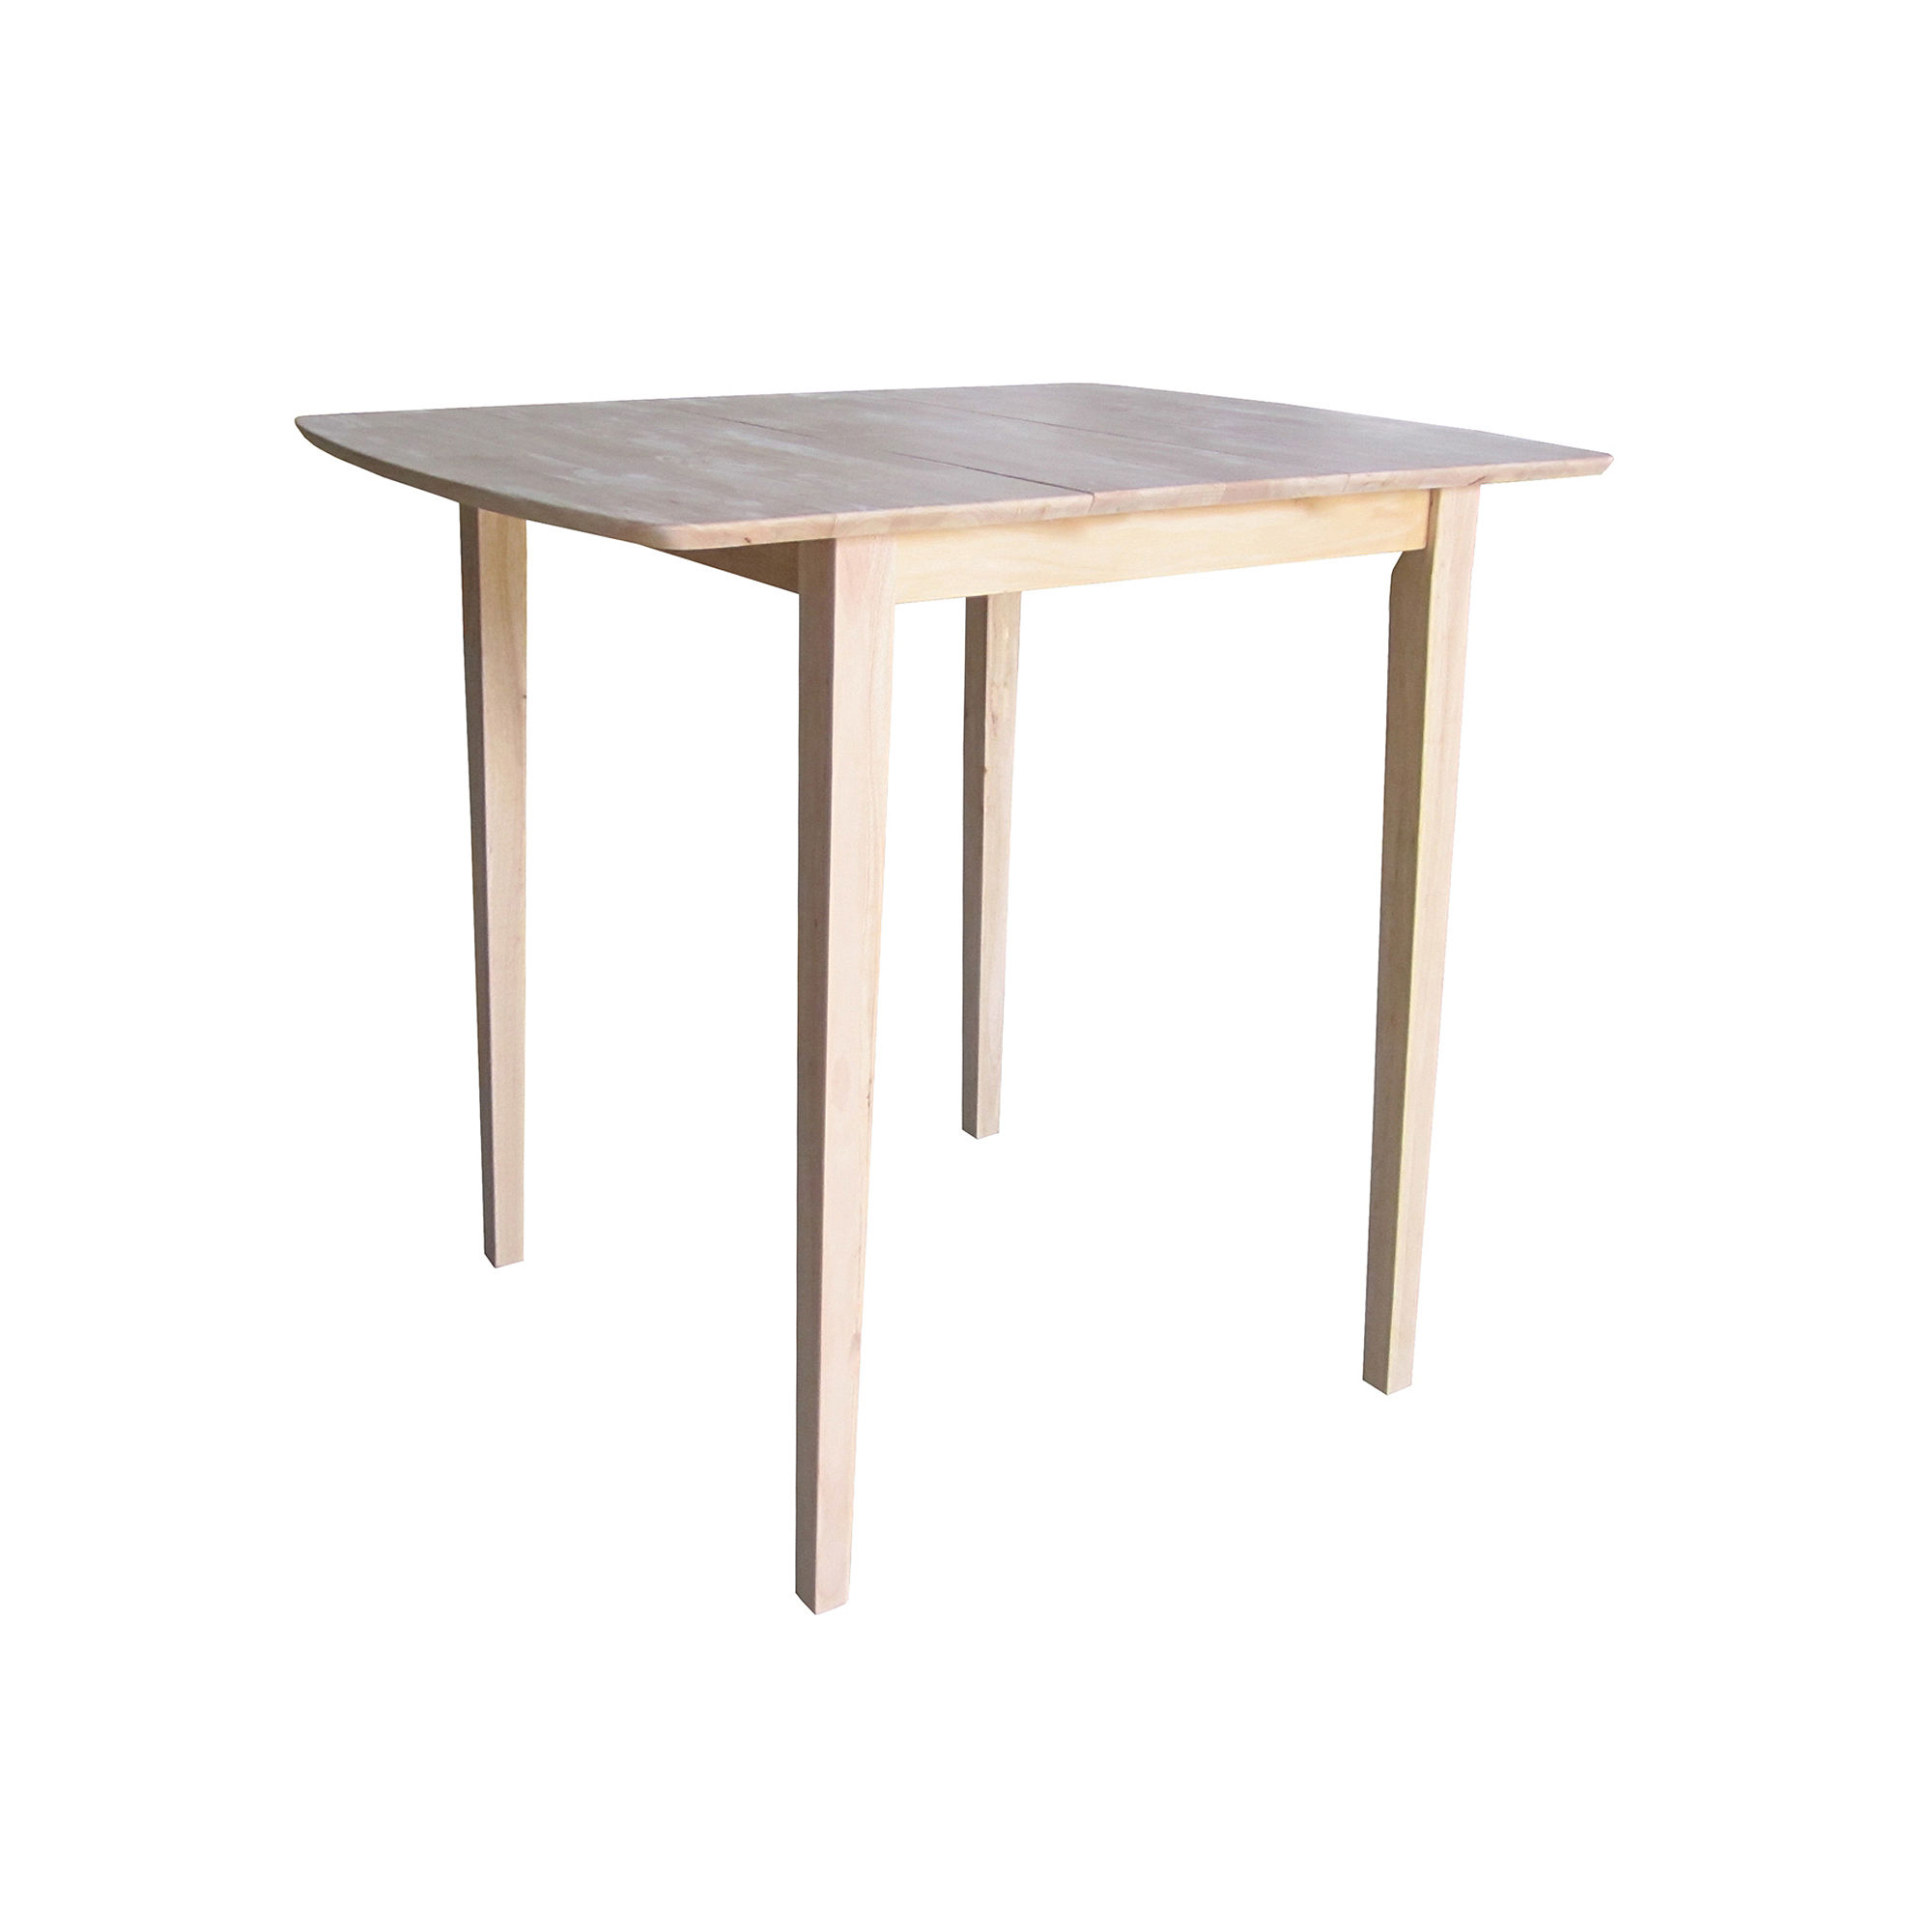 Unfinished Butterfly Extension Square Wood-Top Dining Table